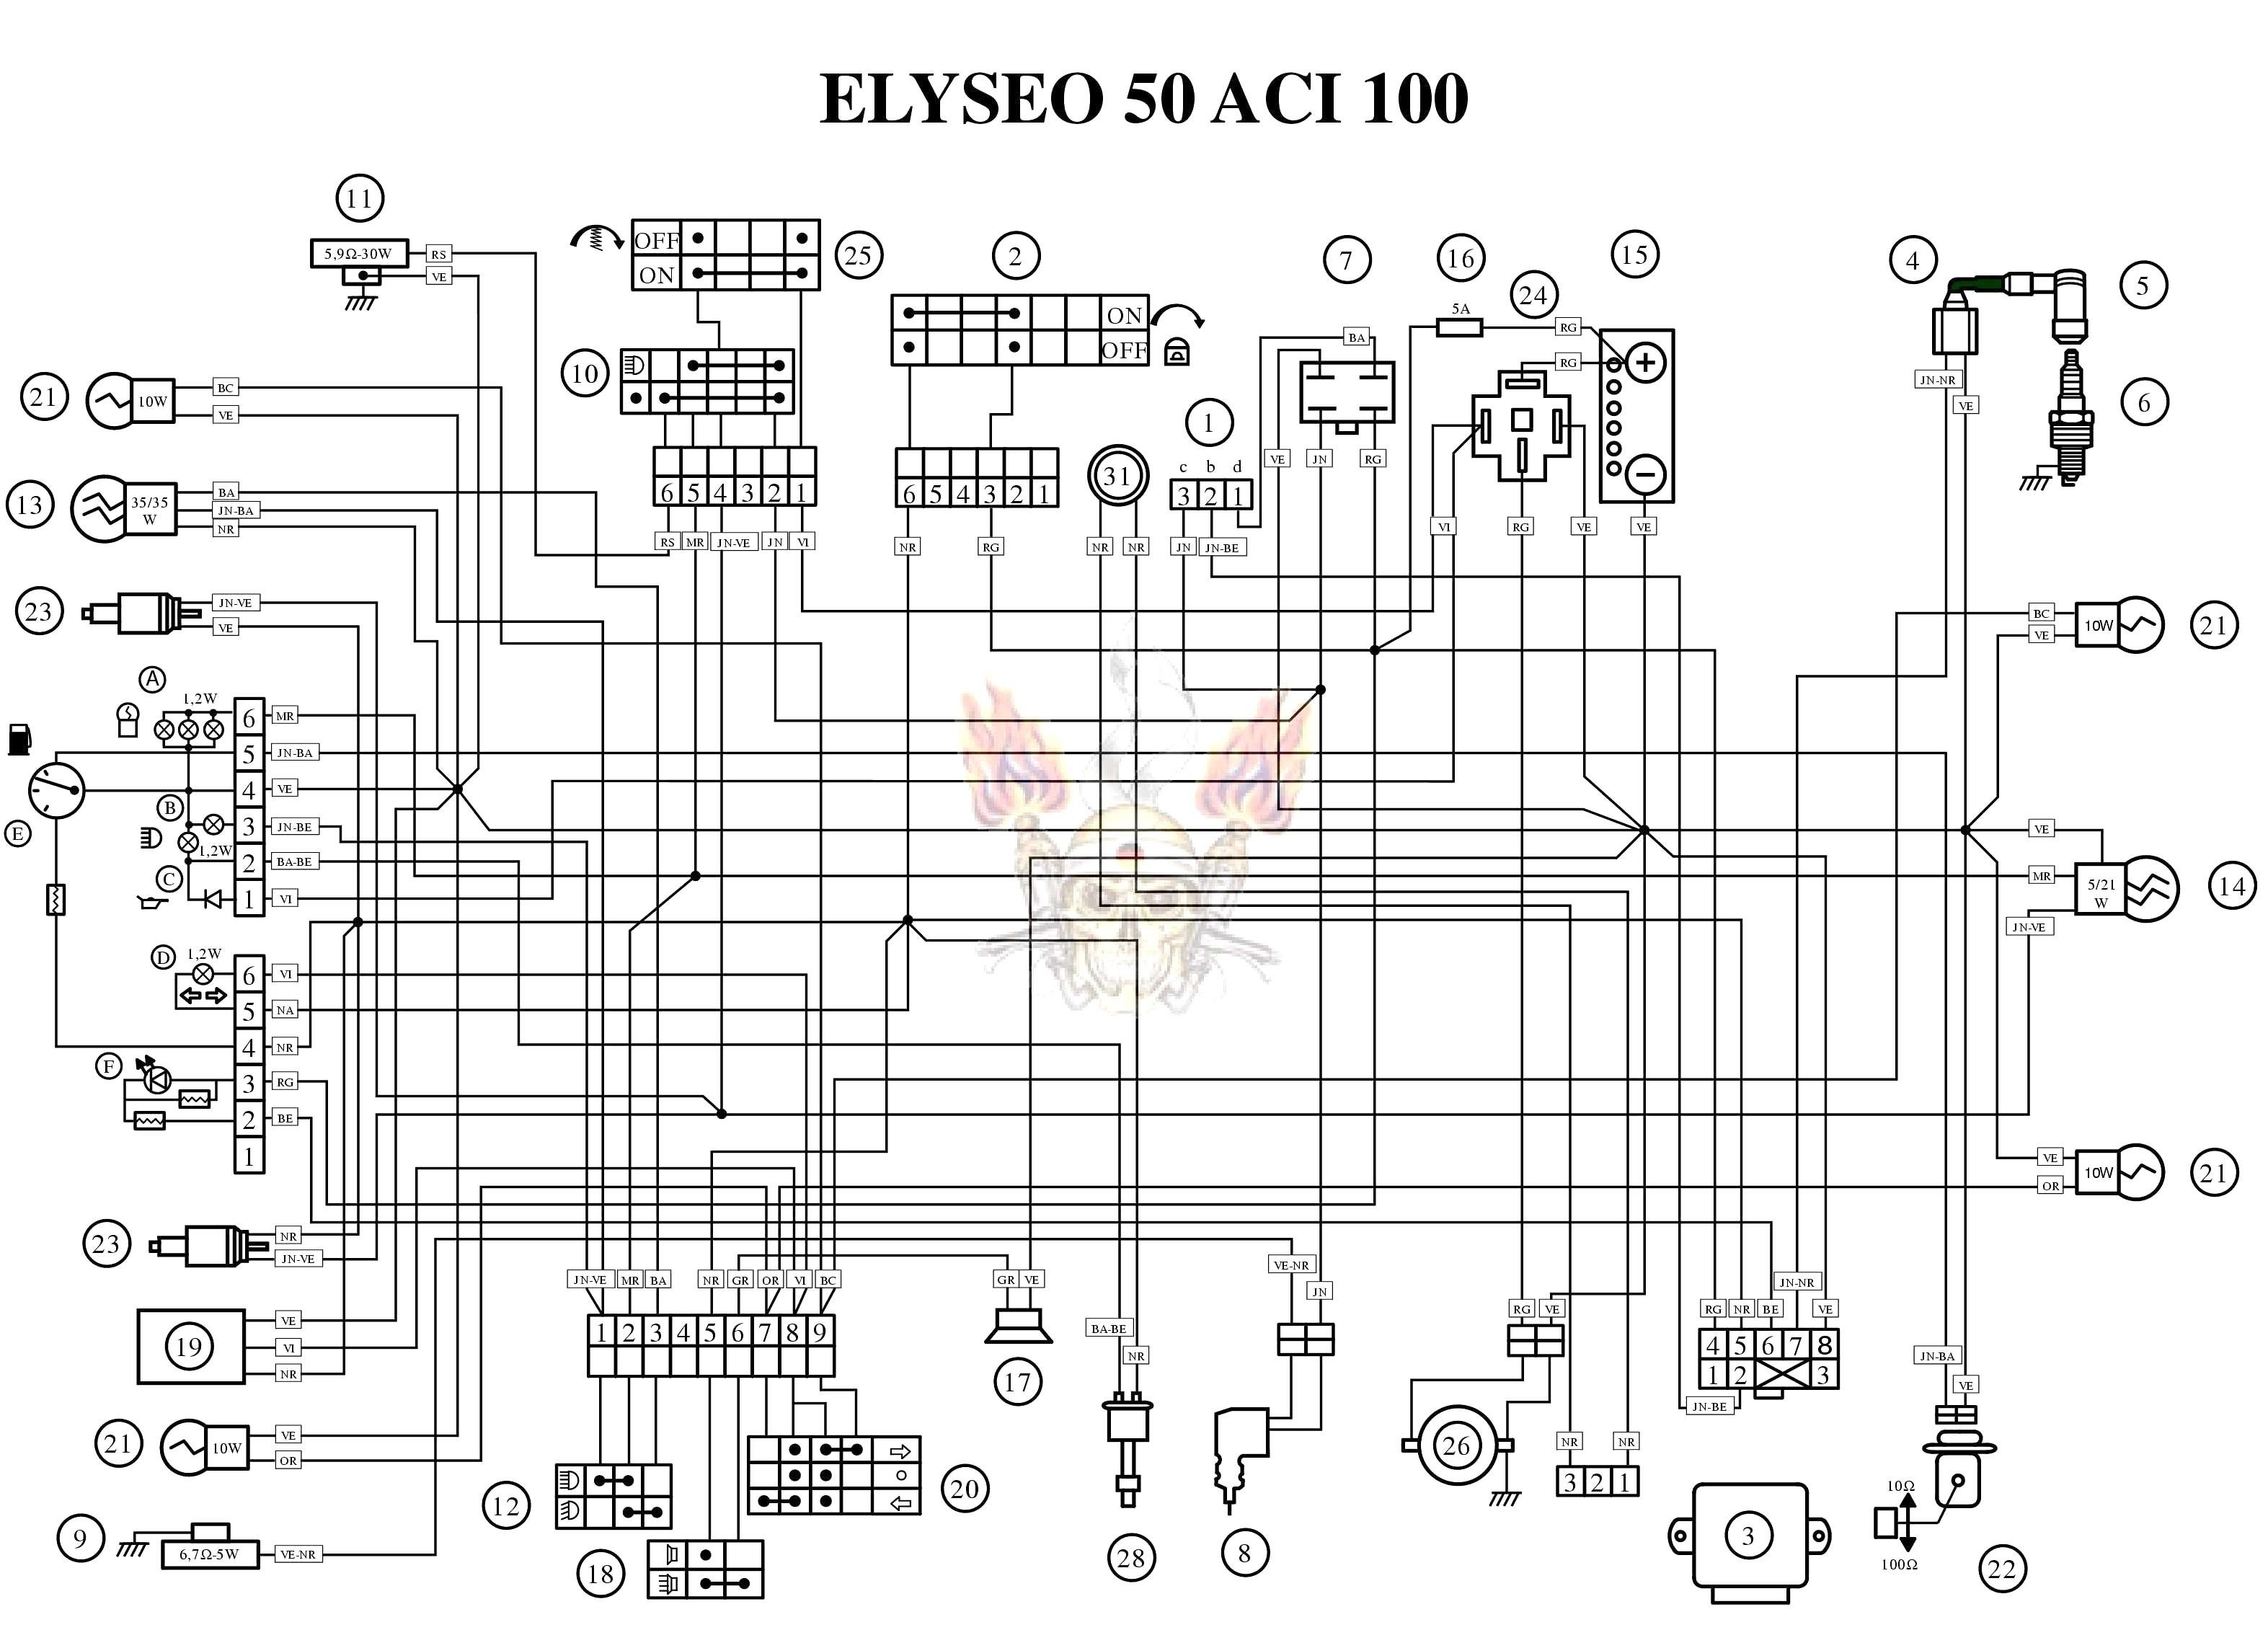 Best Of Wiring Diagram Peugeot 307 Radio Diagrams Digramssample Diagramimages Wiringdiagramsample Wiringdiagram Electrical Wiring Diagram Diagram Peugeot